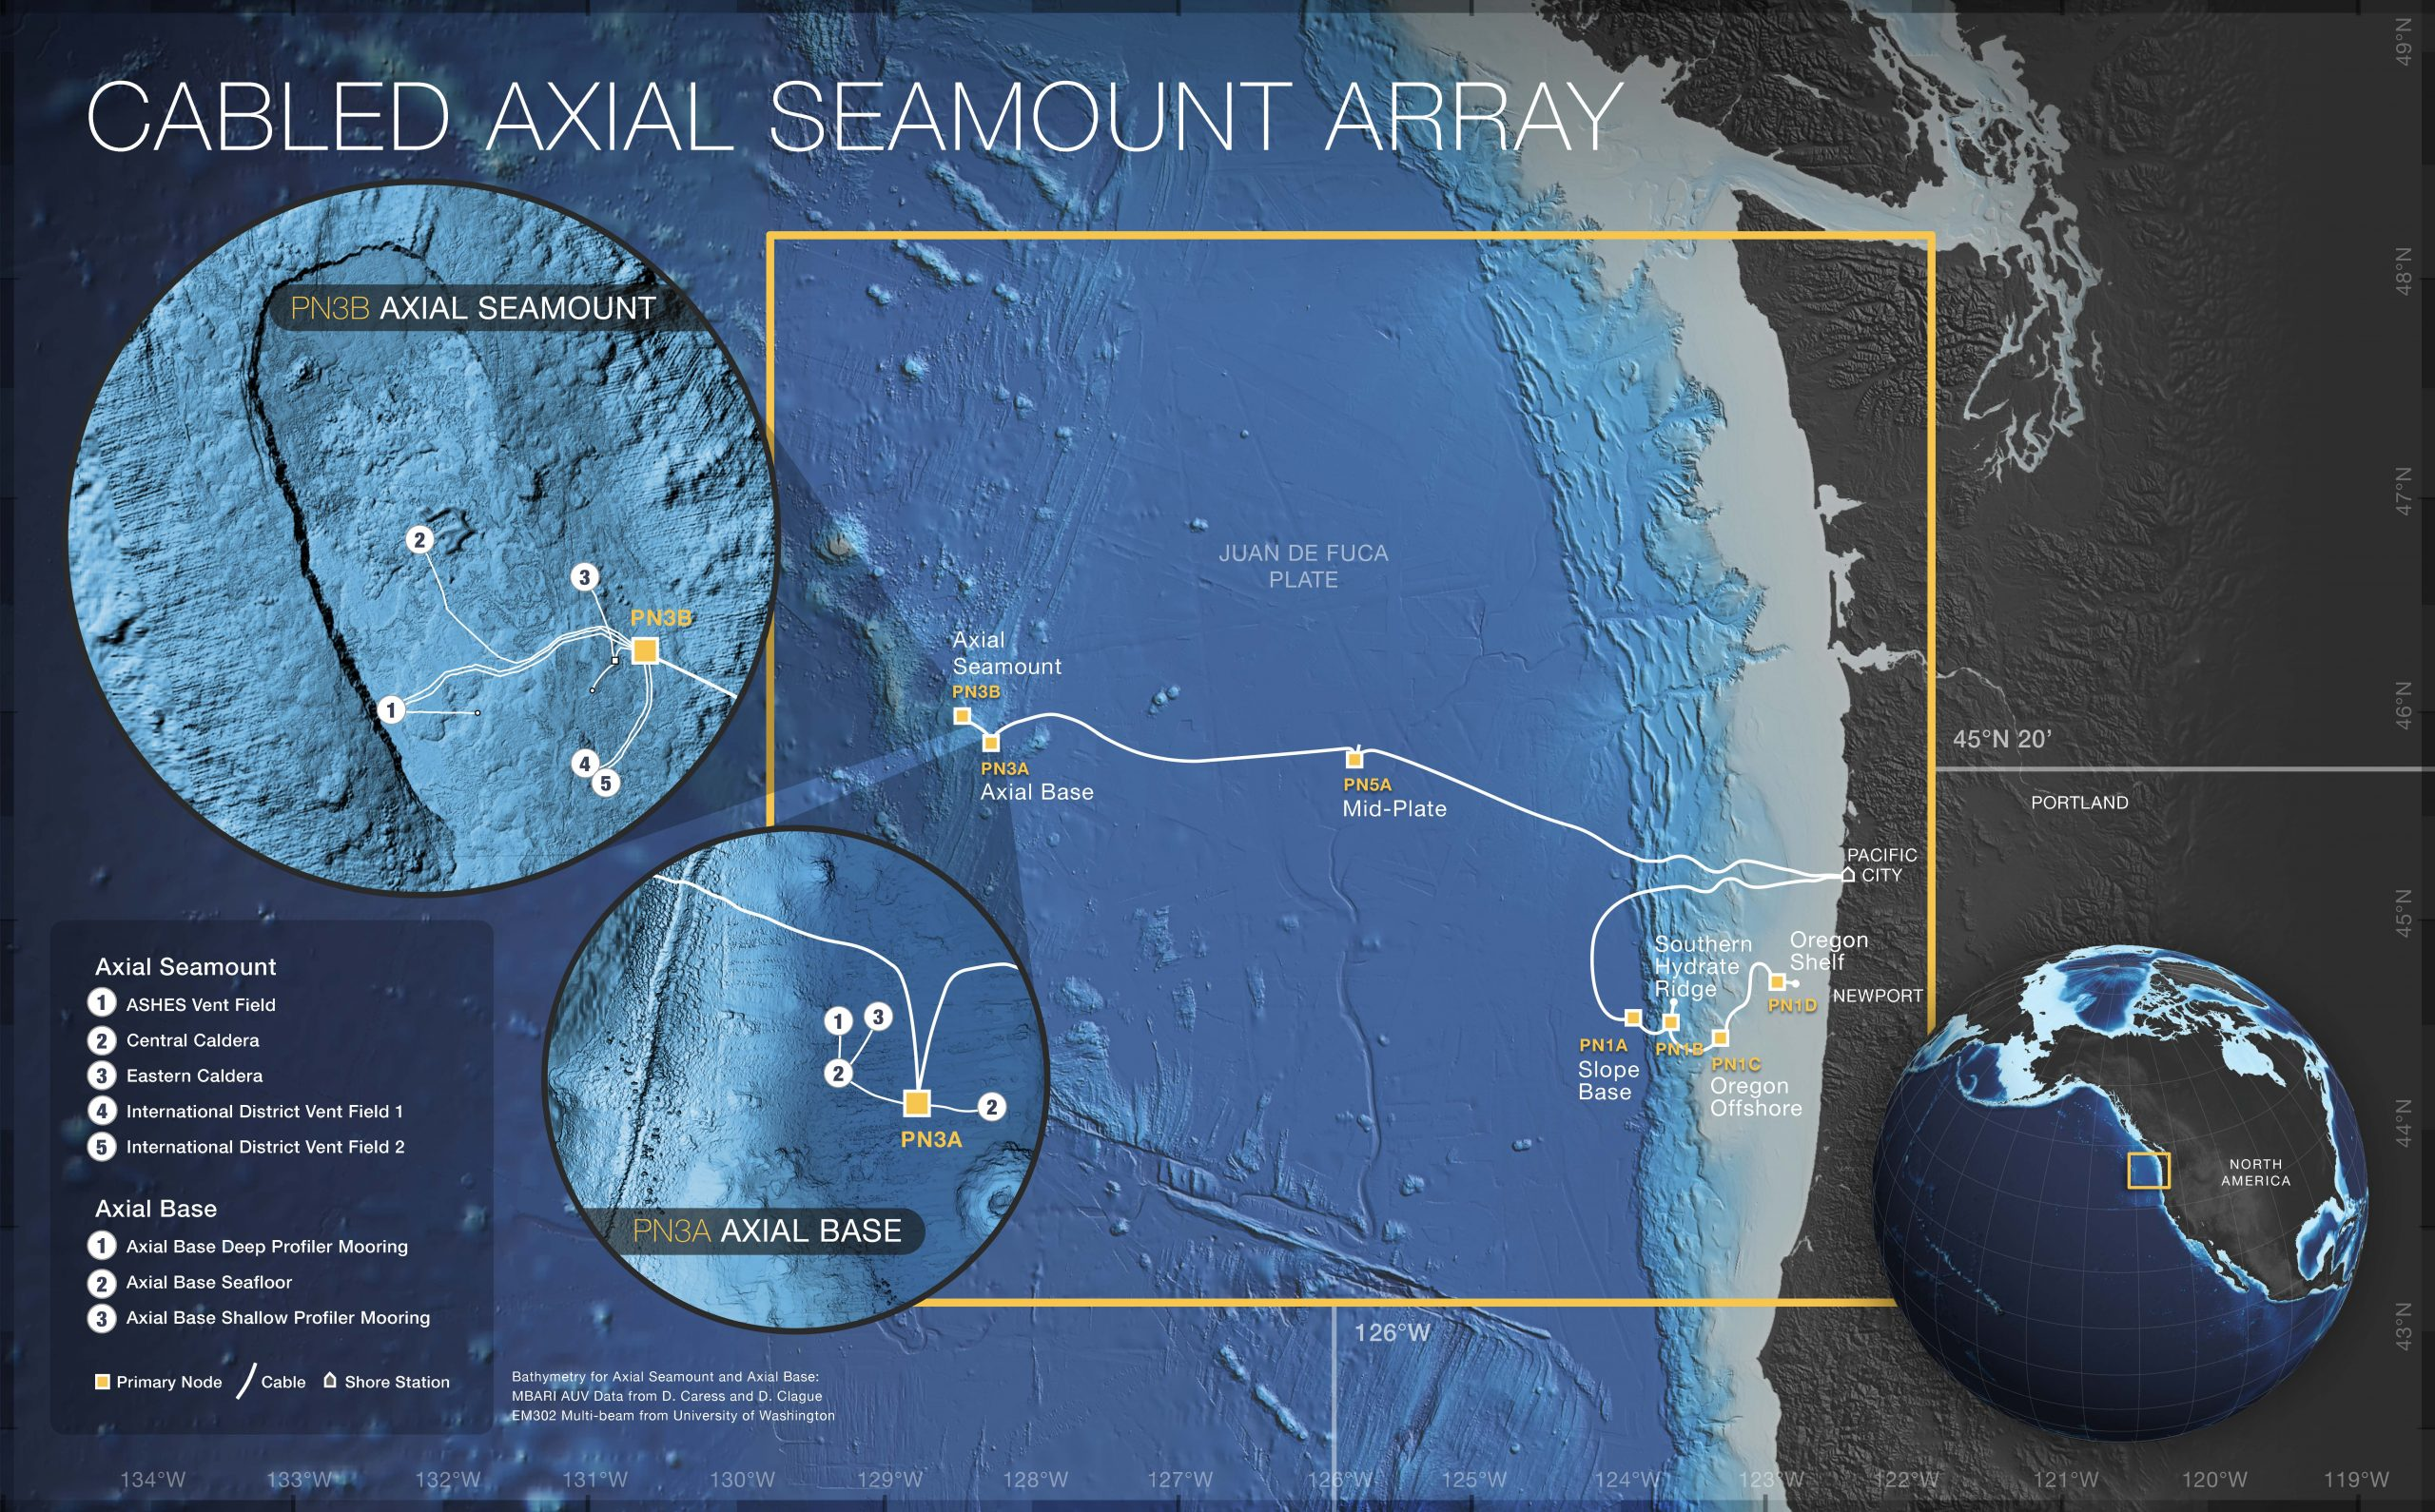 Cabled Axial Seamount Array